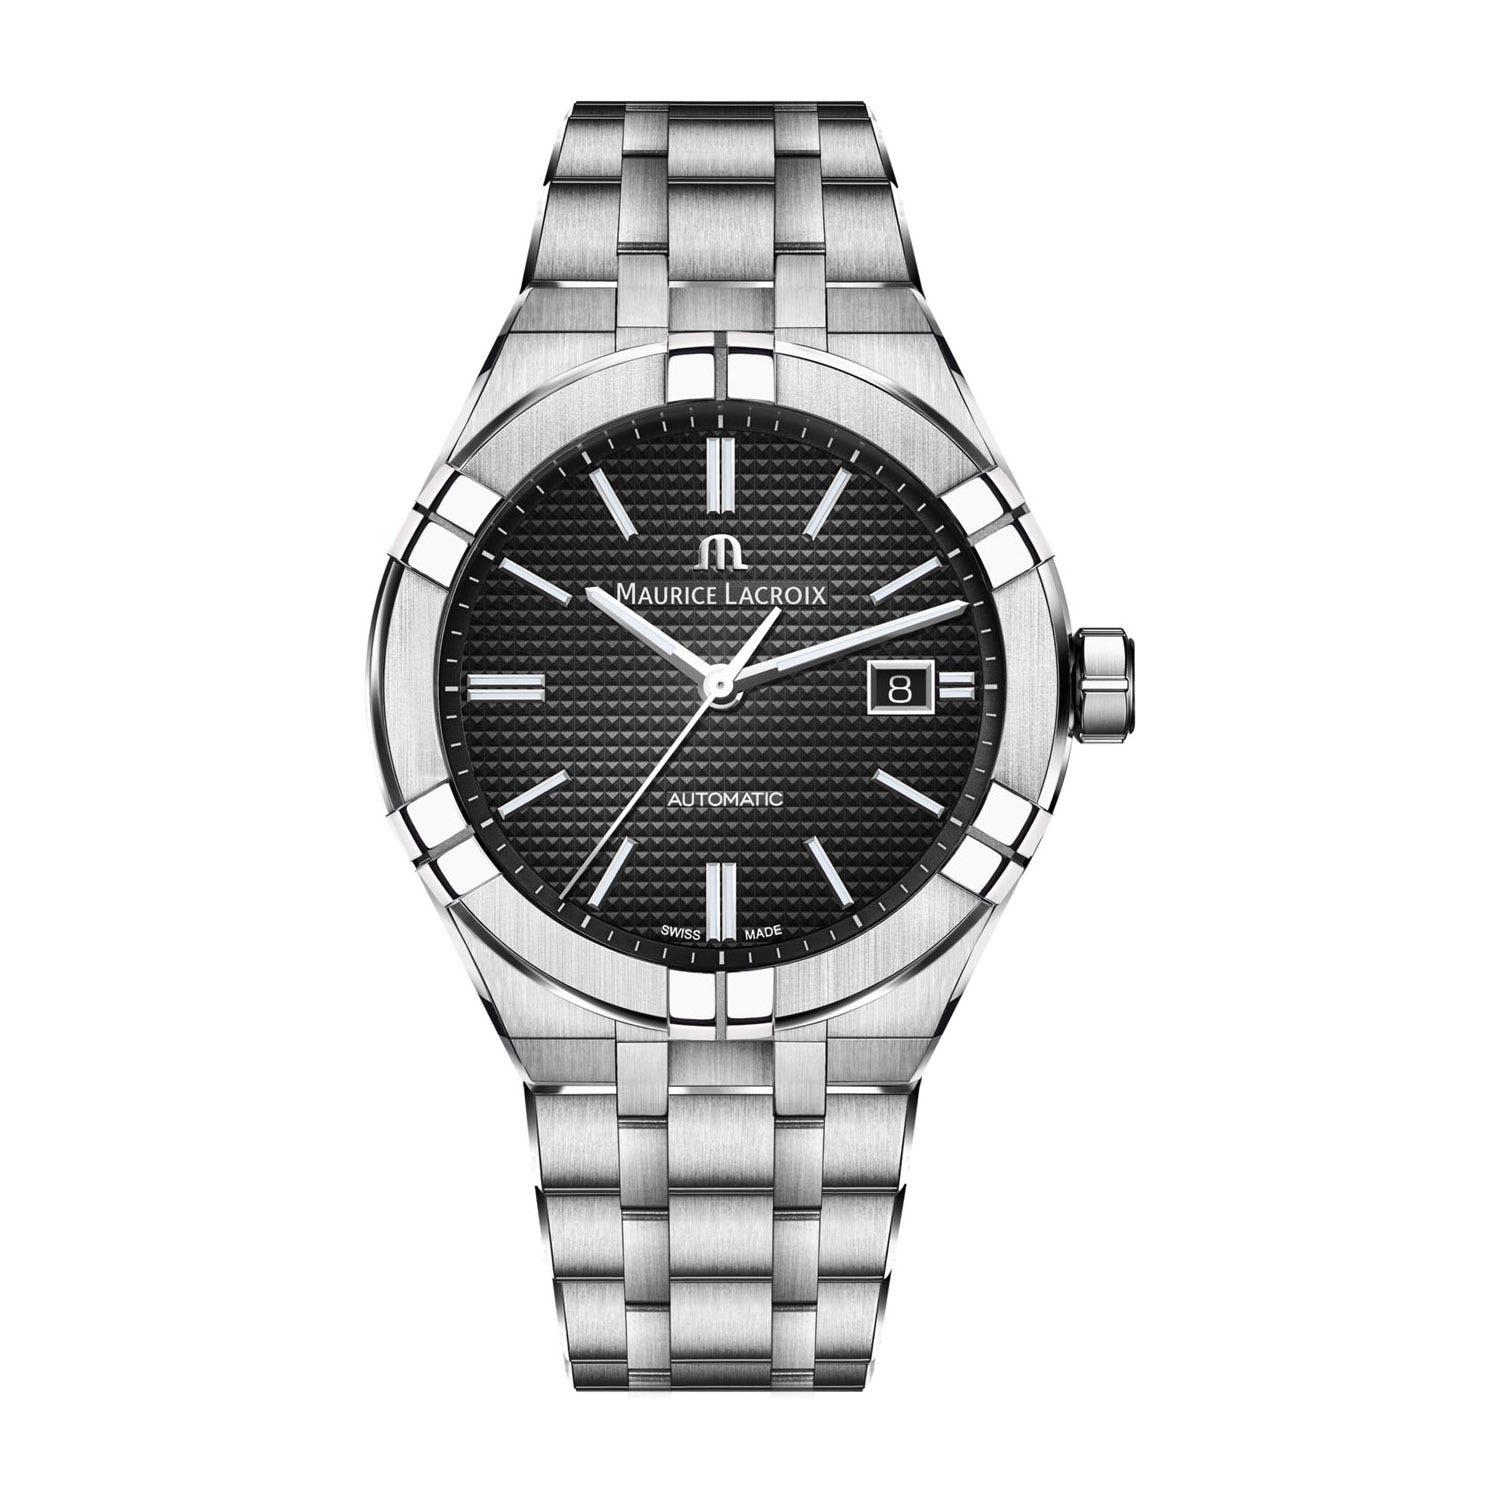 Maurice Lacroix AIKON Automatic Stainless Steel 42mm Watch